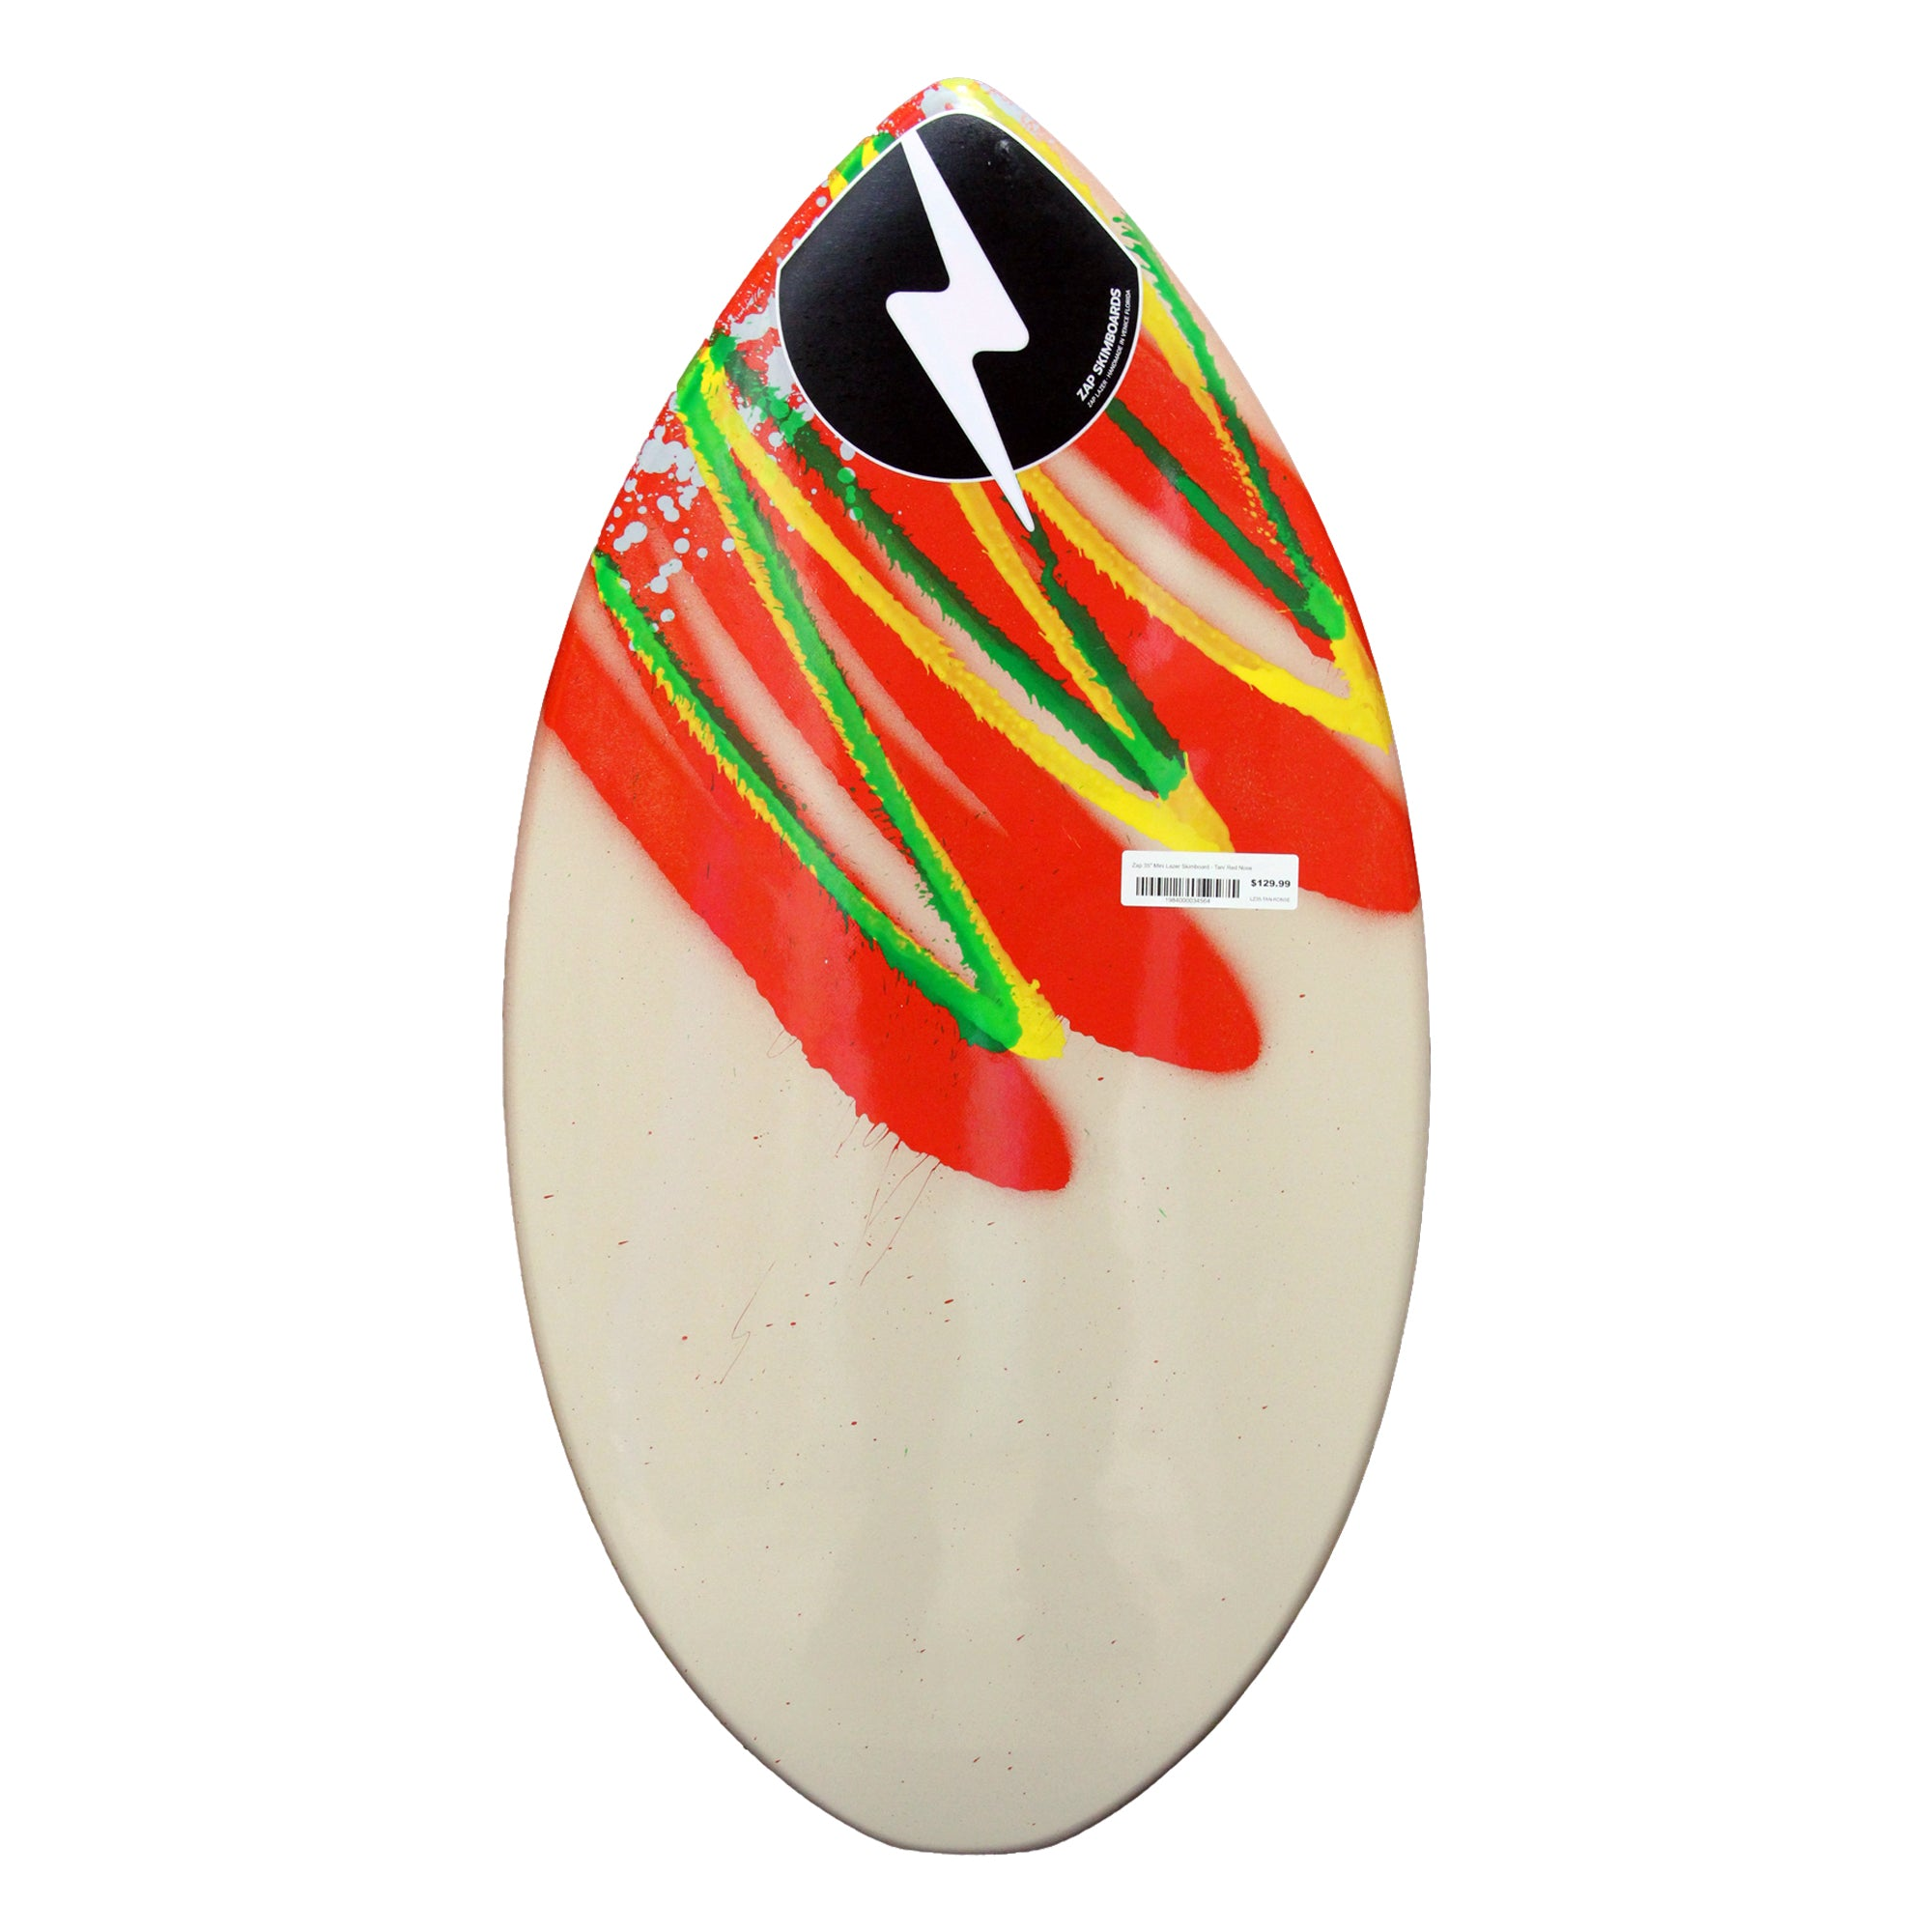 "Zap 35"" Mini Lazer Skimboard - Tan/Red Nose"